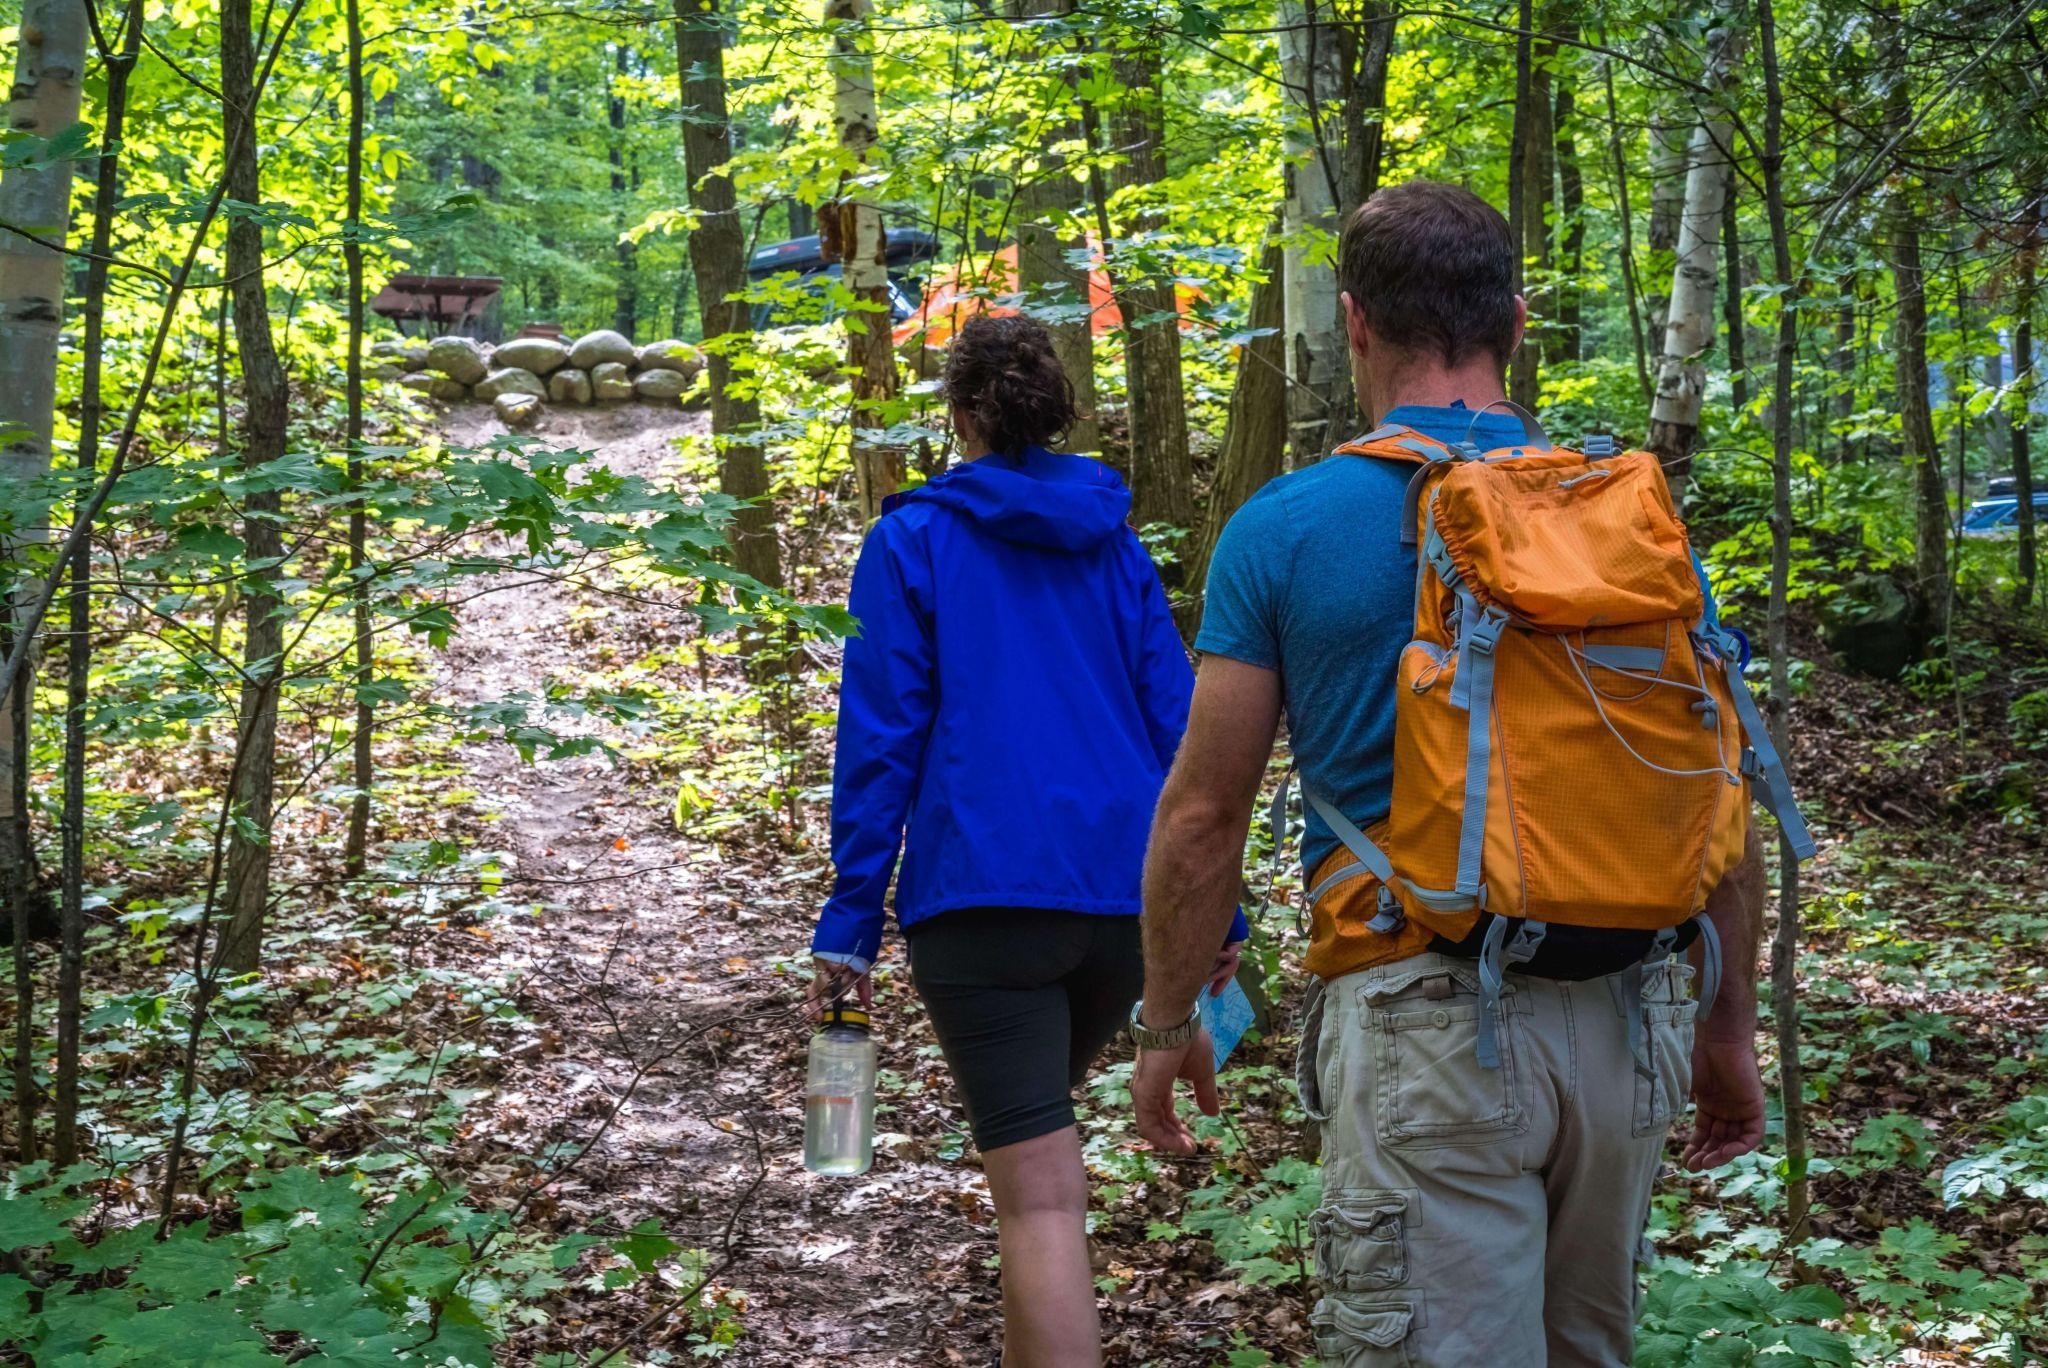 Top 5 Hidden Trails to Hike in the Greenbelt